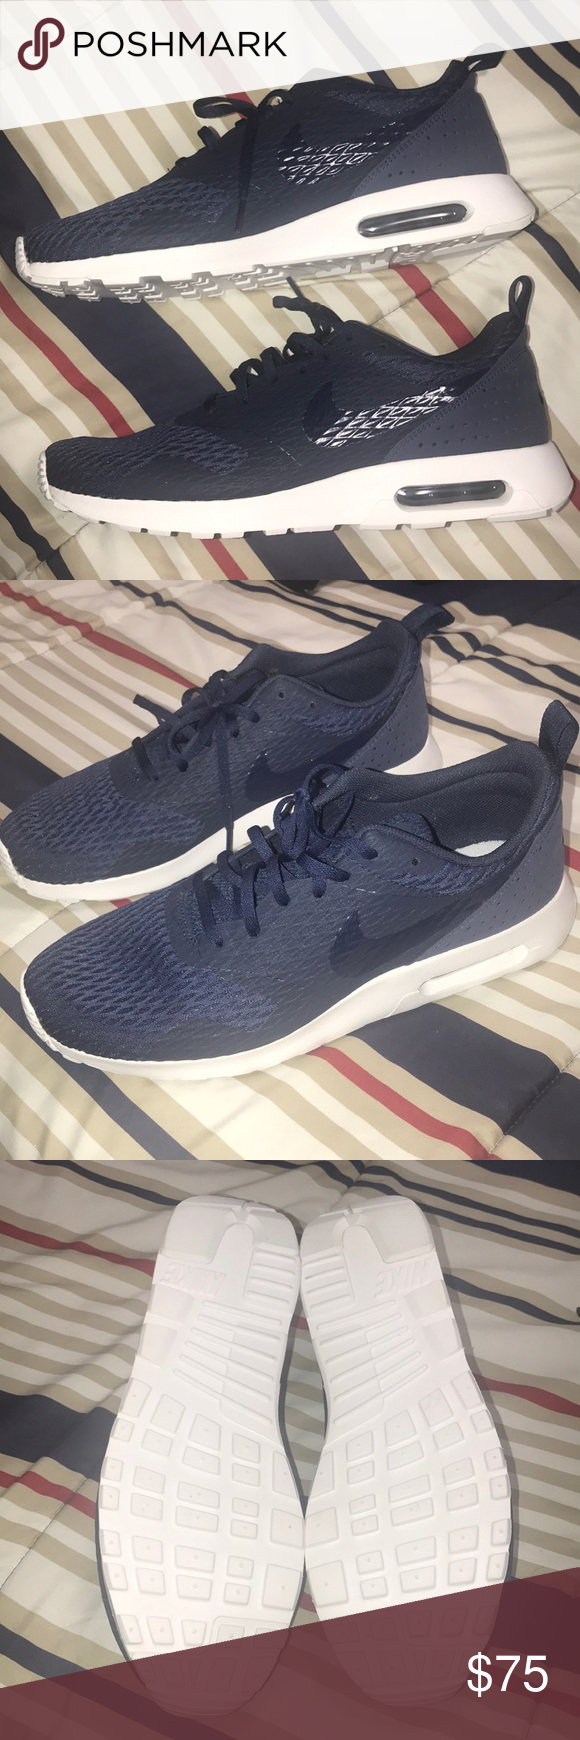 low priced 1d32e 20d03 Brand new Men s Nike Air Max Tavas Never Worn Blue nike men s size 11 Nike  Air Max Tavas , Brand new , never worn perfect Nike Shoes Athletic Shoes